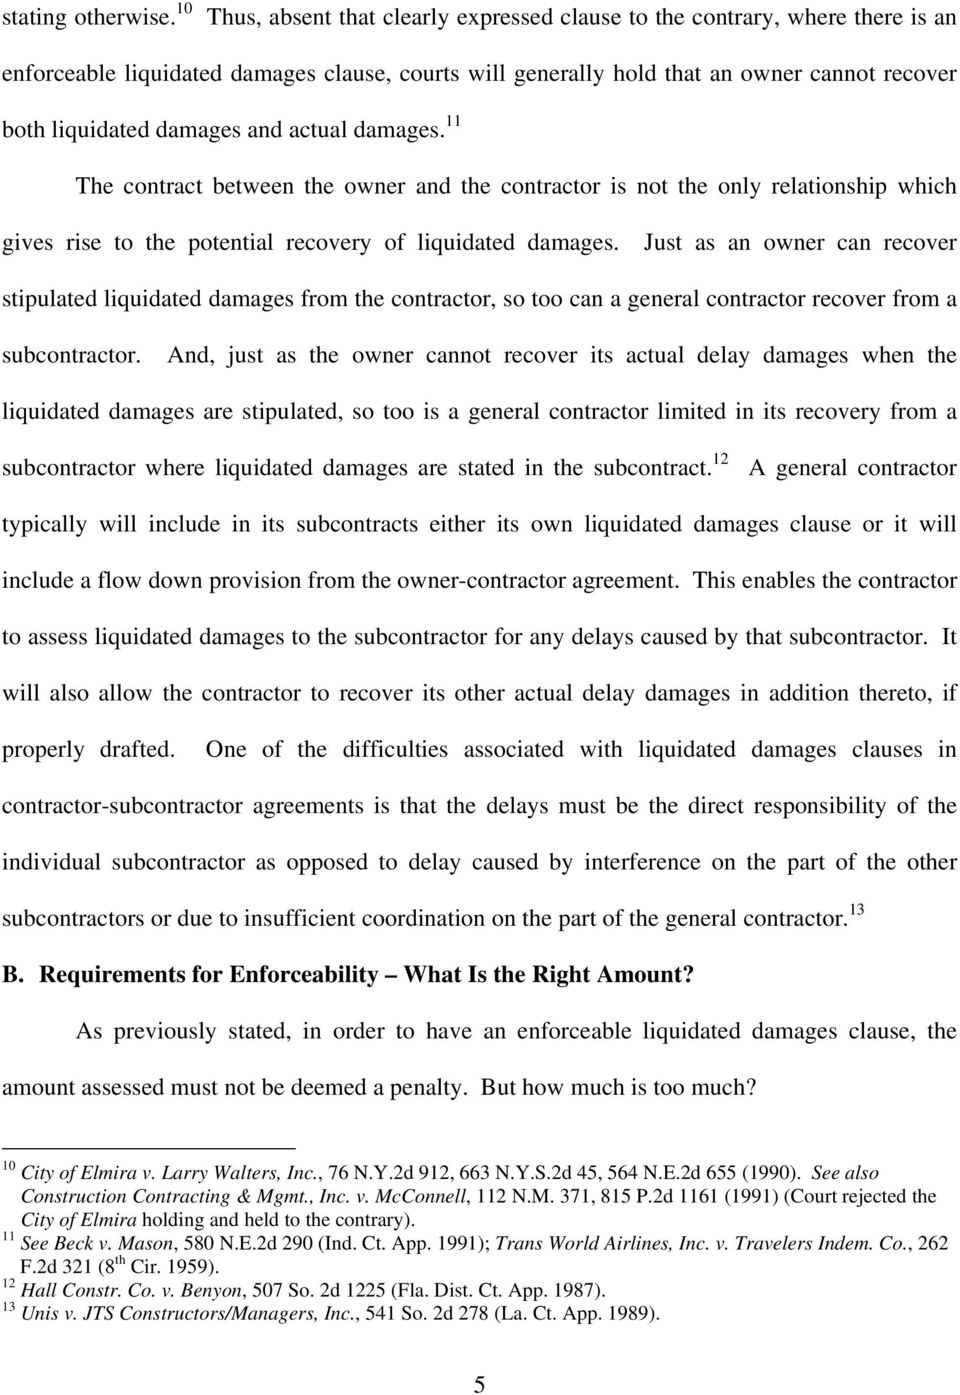 The Availability And Enforceability Of Liquidated Damages In